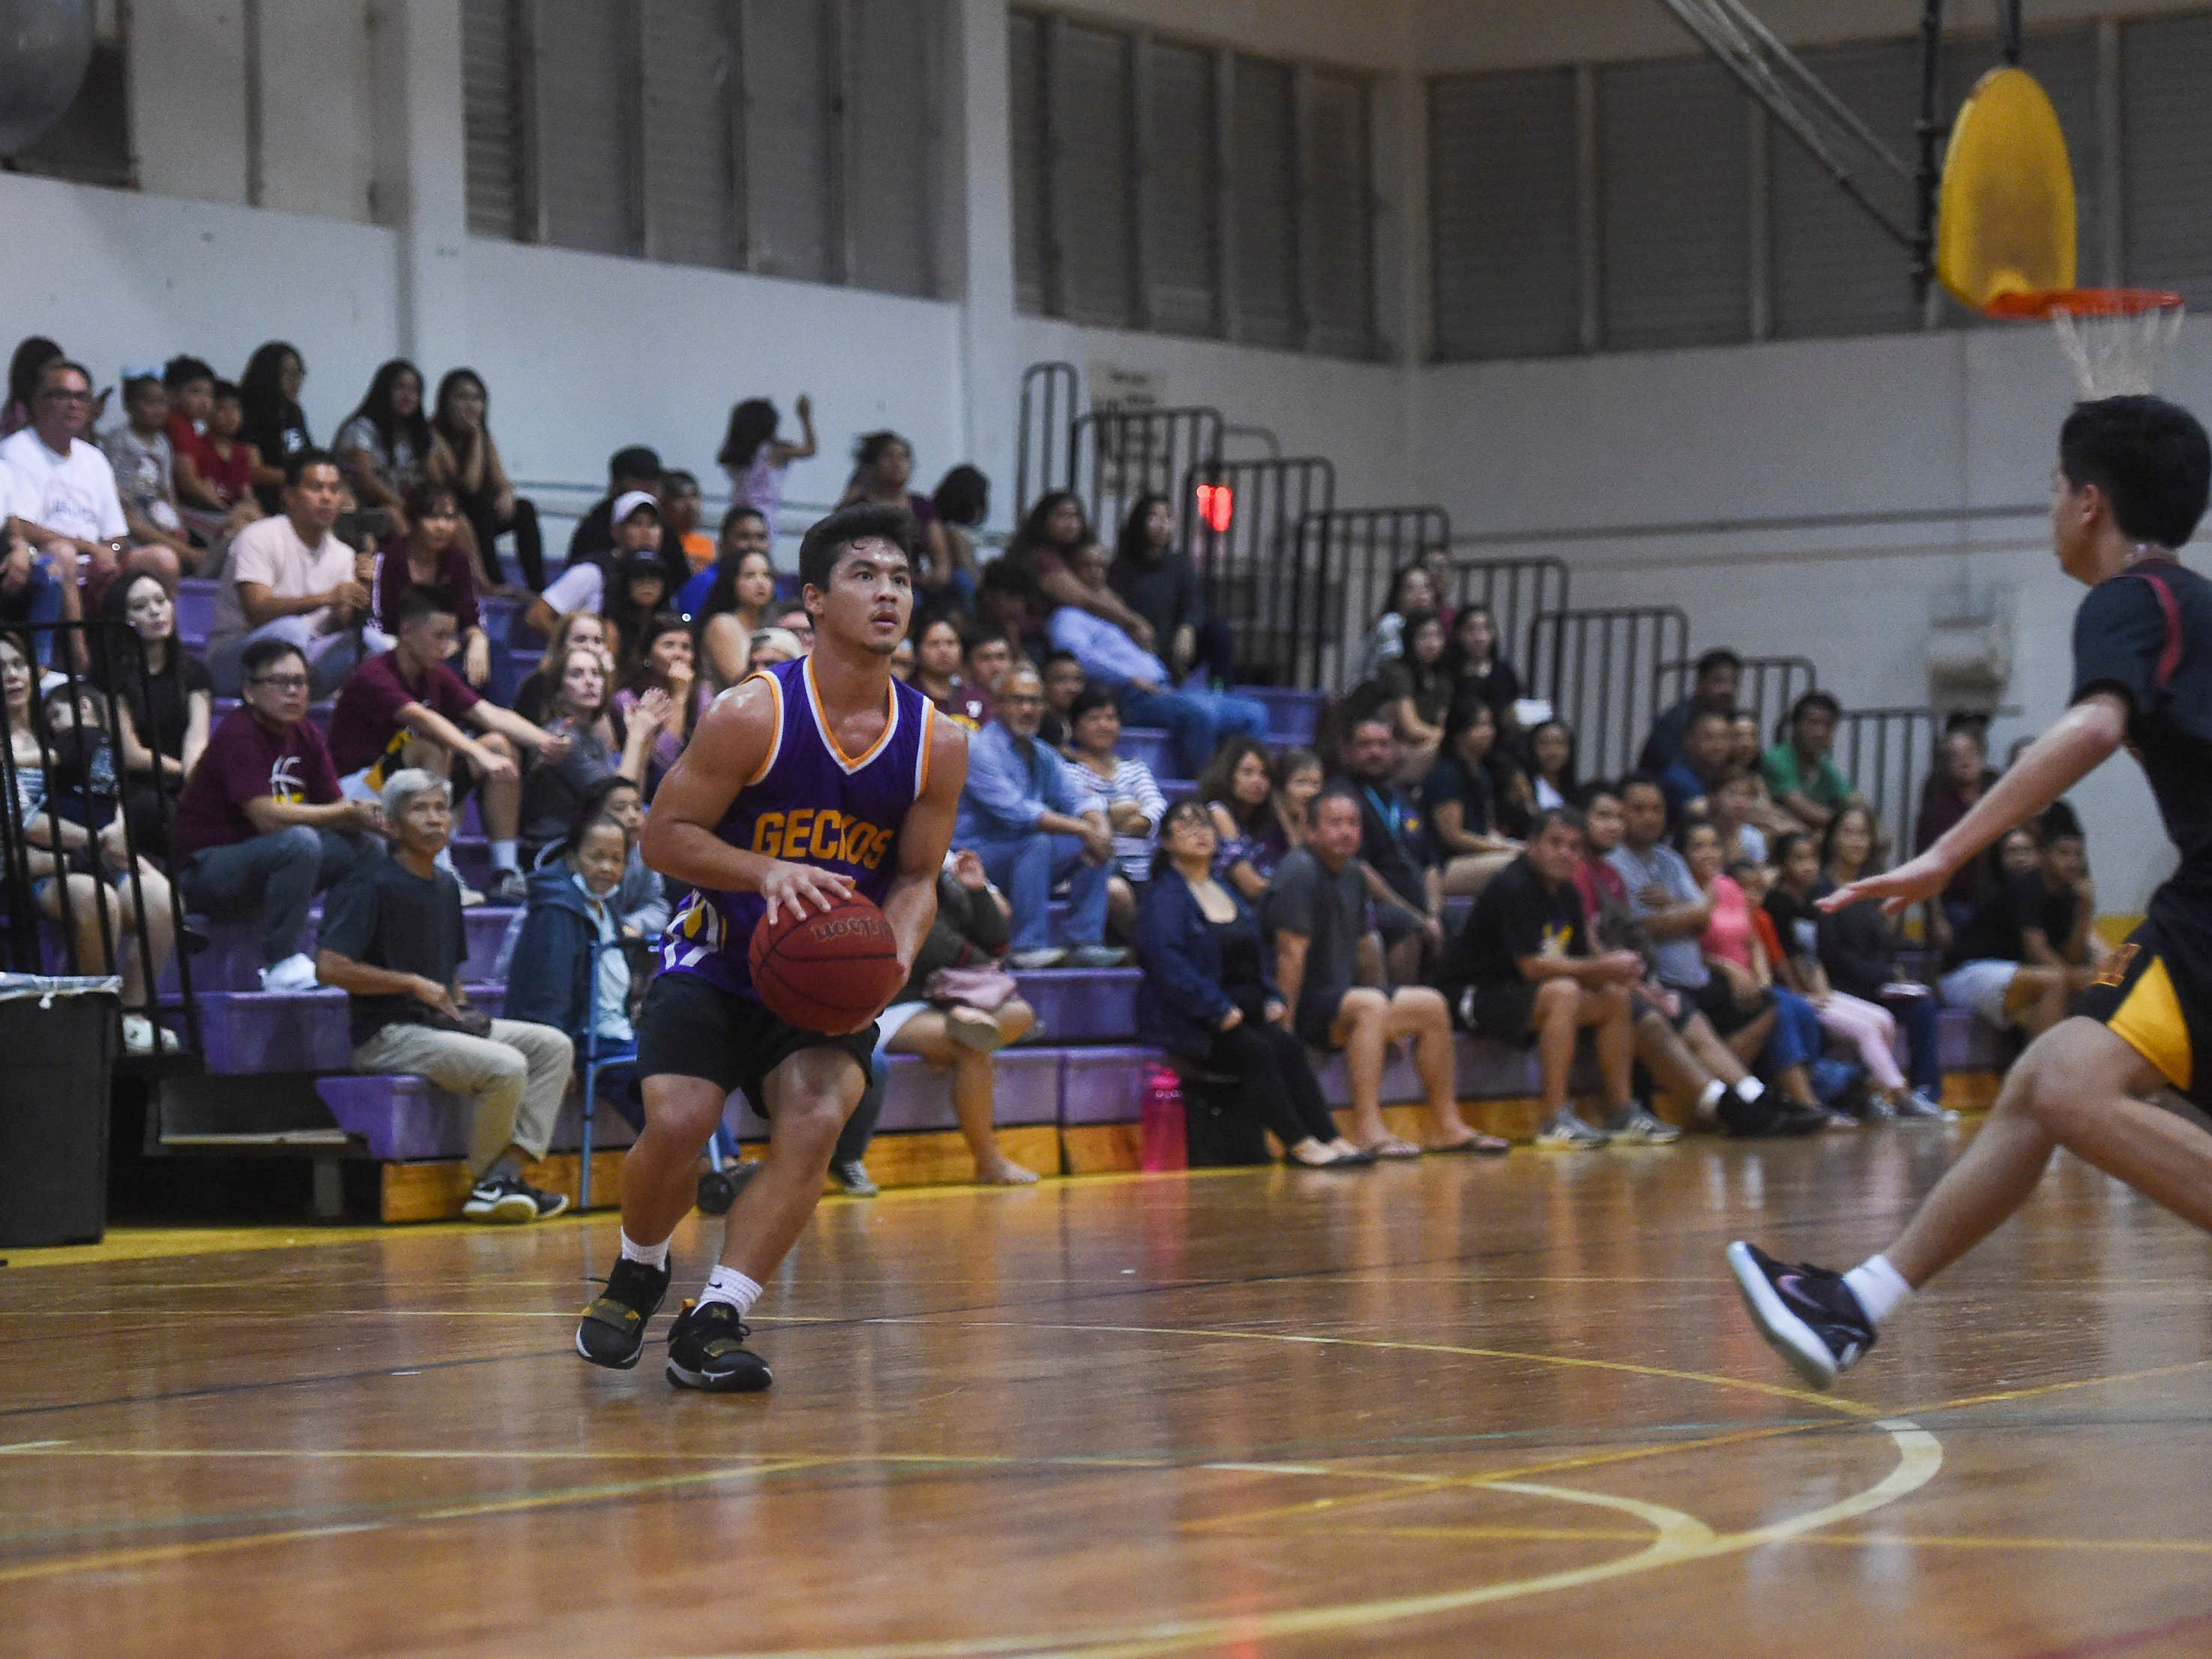 Geckos' Shelby Meeks is left alone at the 3-point line during an Independent Interscholastic Athletic Association of Guam Boys' Basketball game against the Friars at the George Washington High School gym, Jan. 19, 2019. The Friars came through with a 52-69 comeback victory over the Geckos after trailing in the first half.